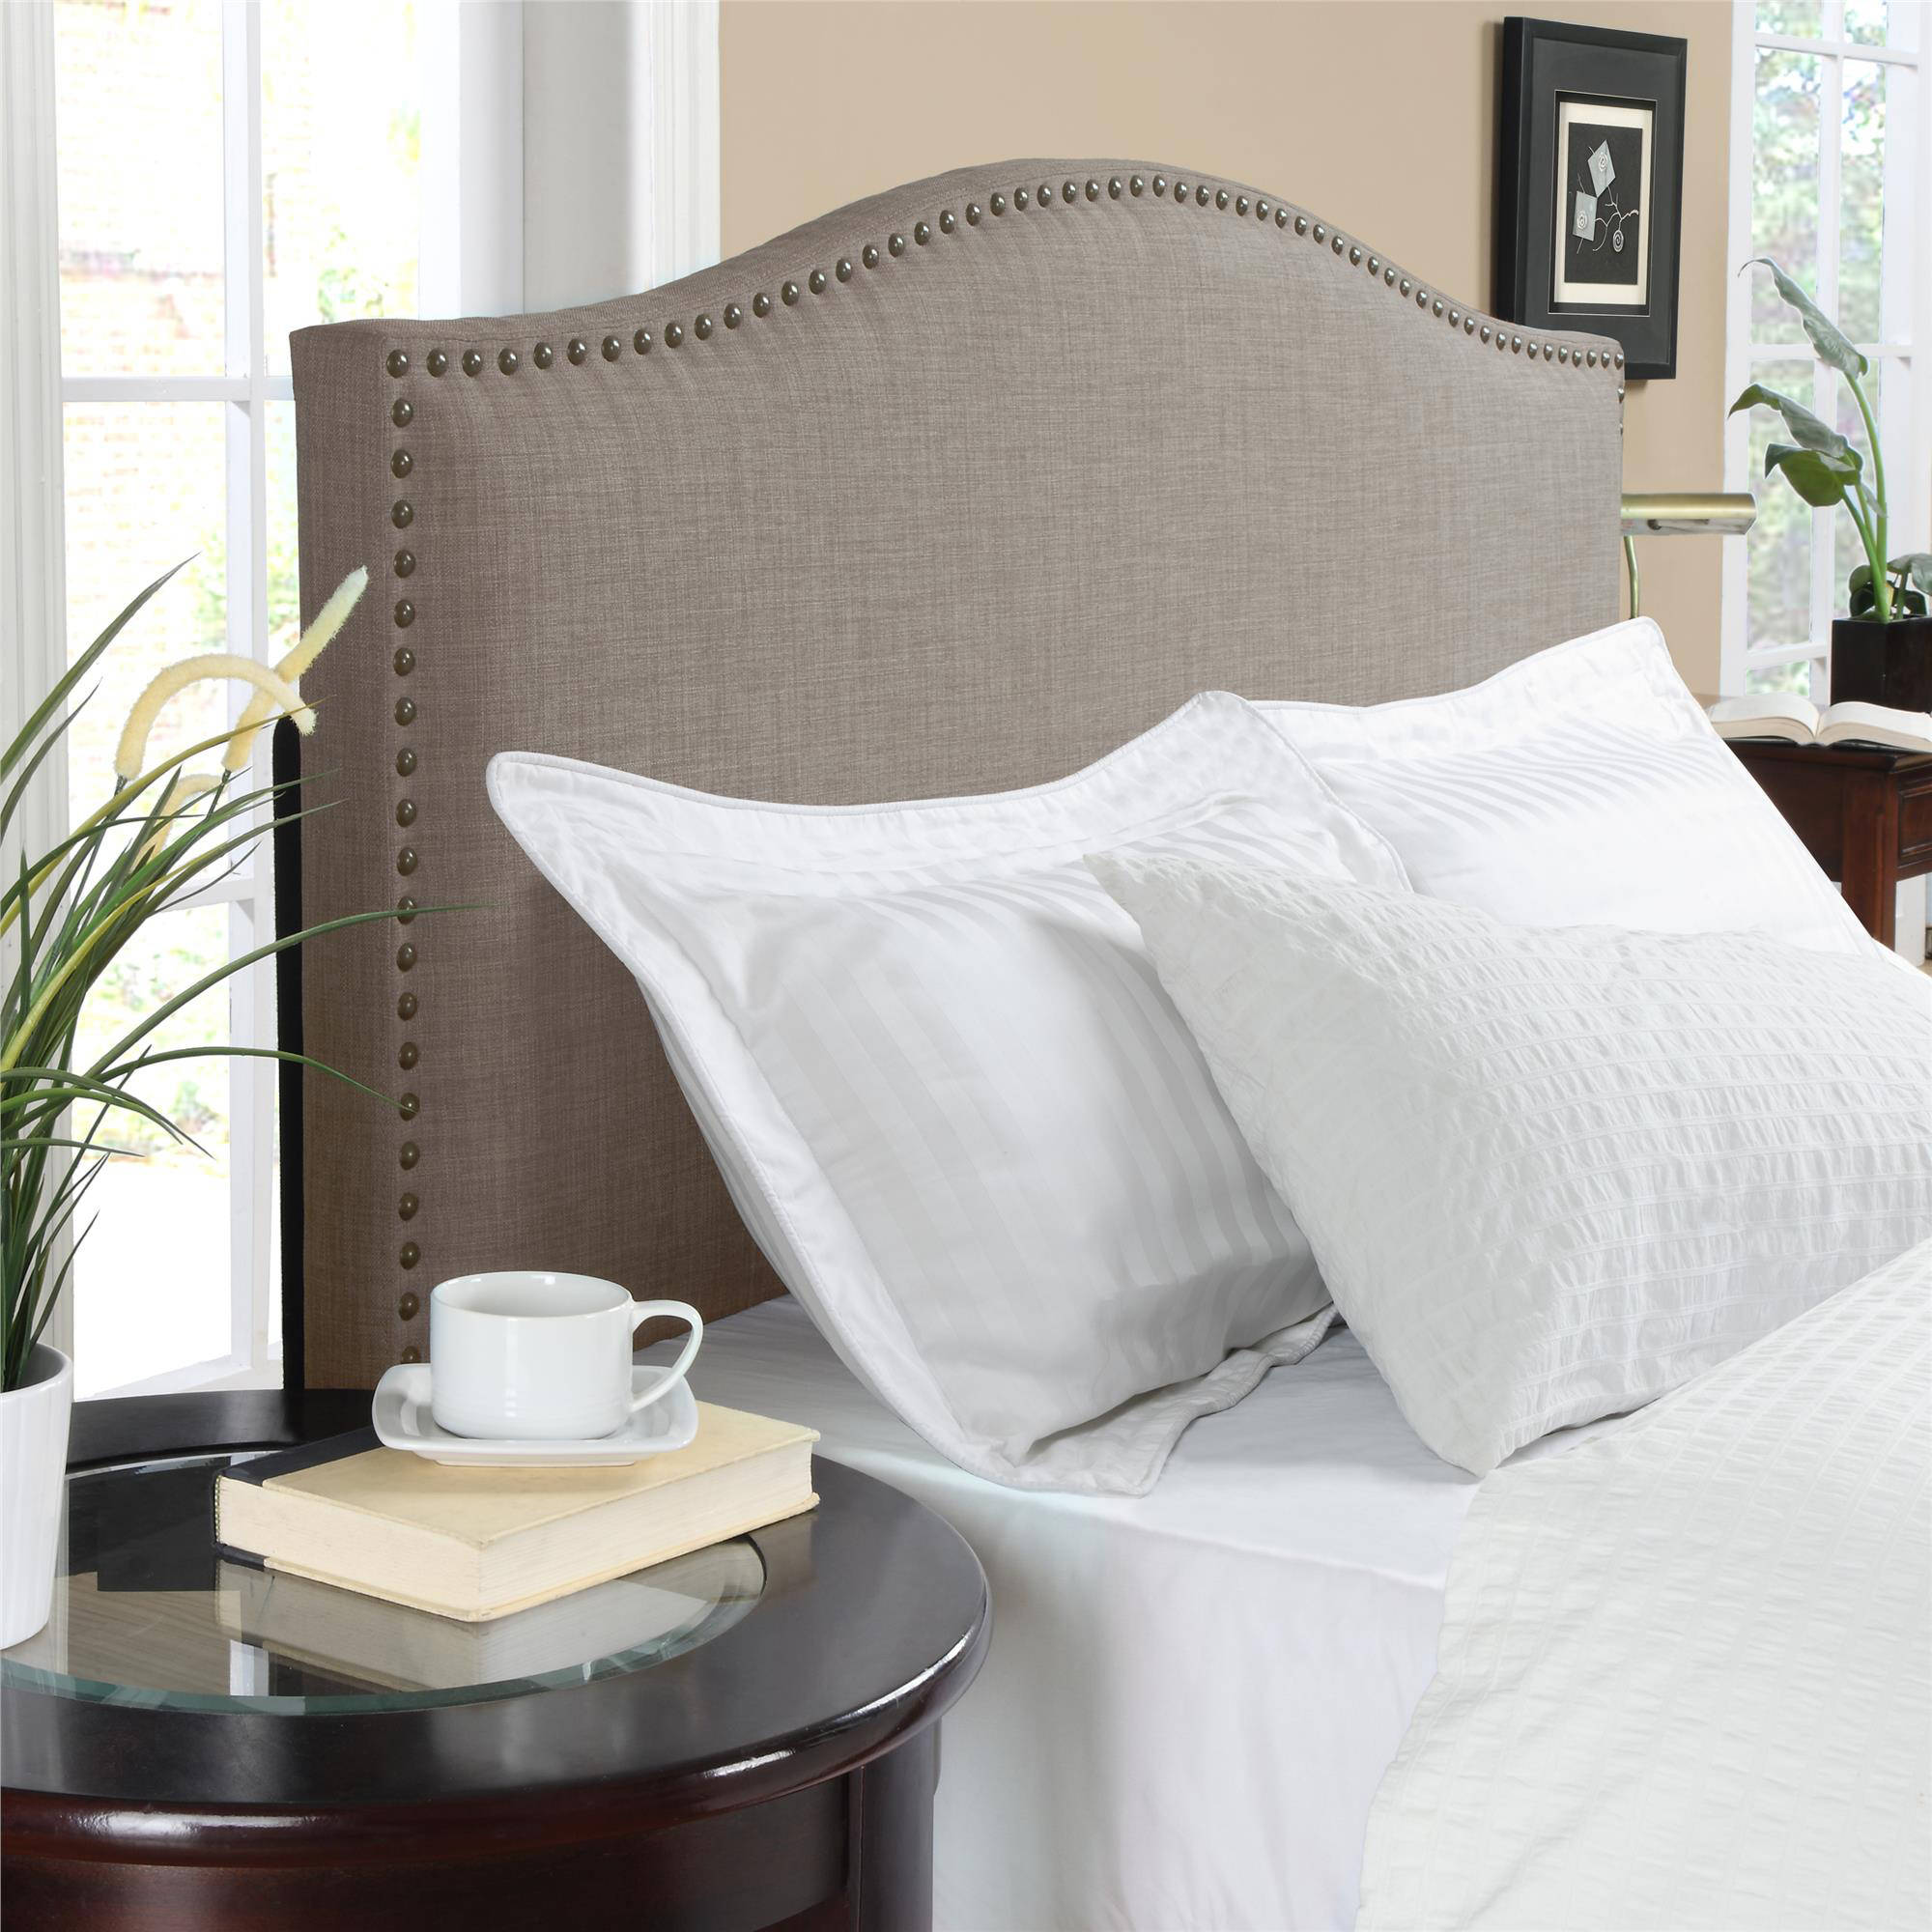 Better Homes and Gardens Grayson Linen Upholstered Headboard with Nailheads, Multiple Colors